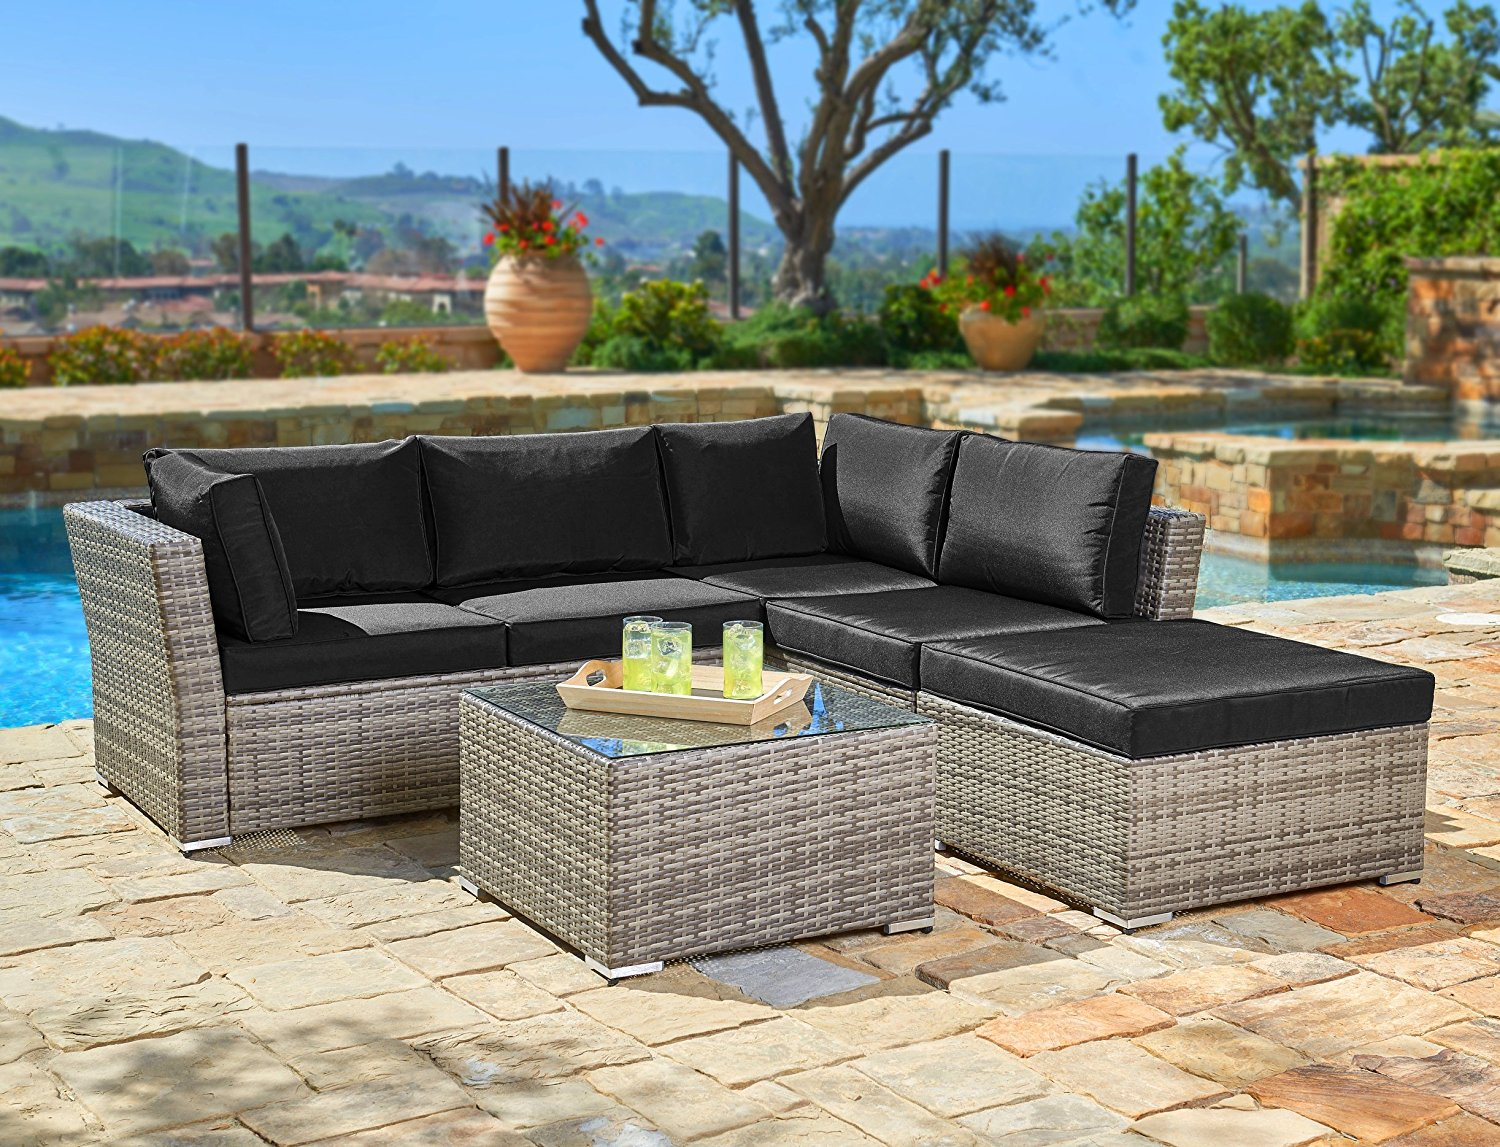 Suncrown Outdoor Furniture Sectional Sofa (4-Piece Set) All-Weather